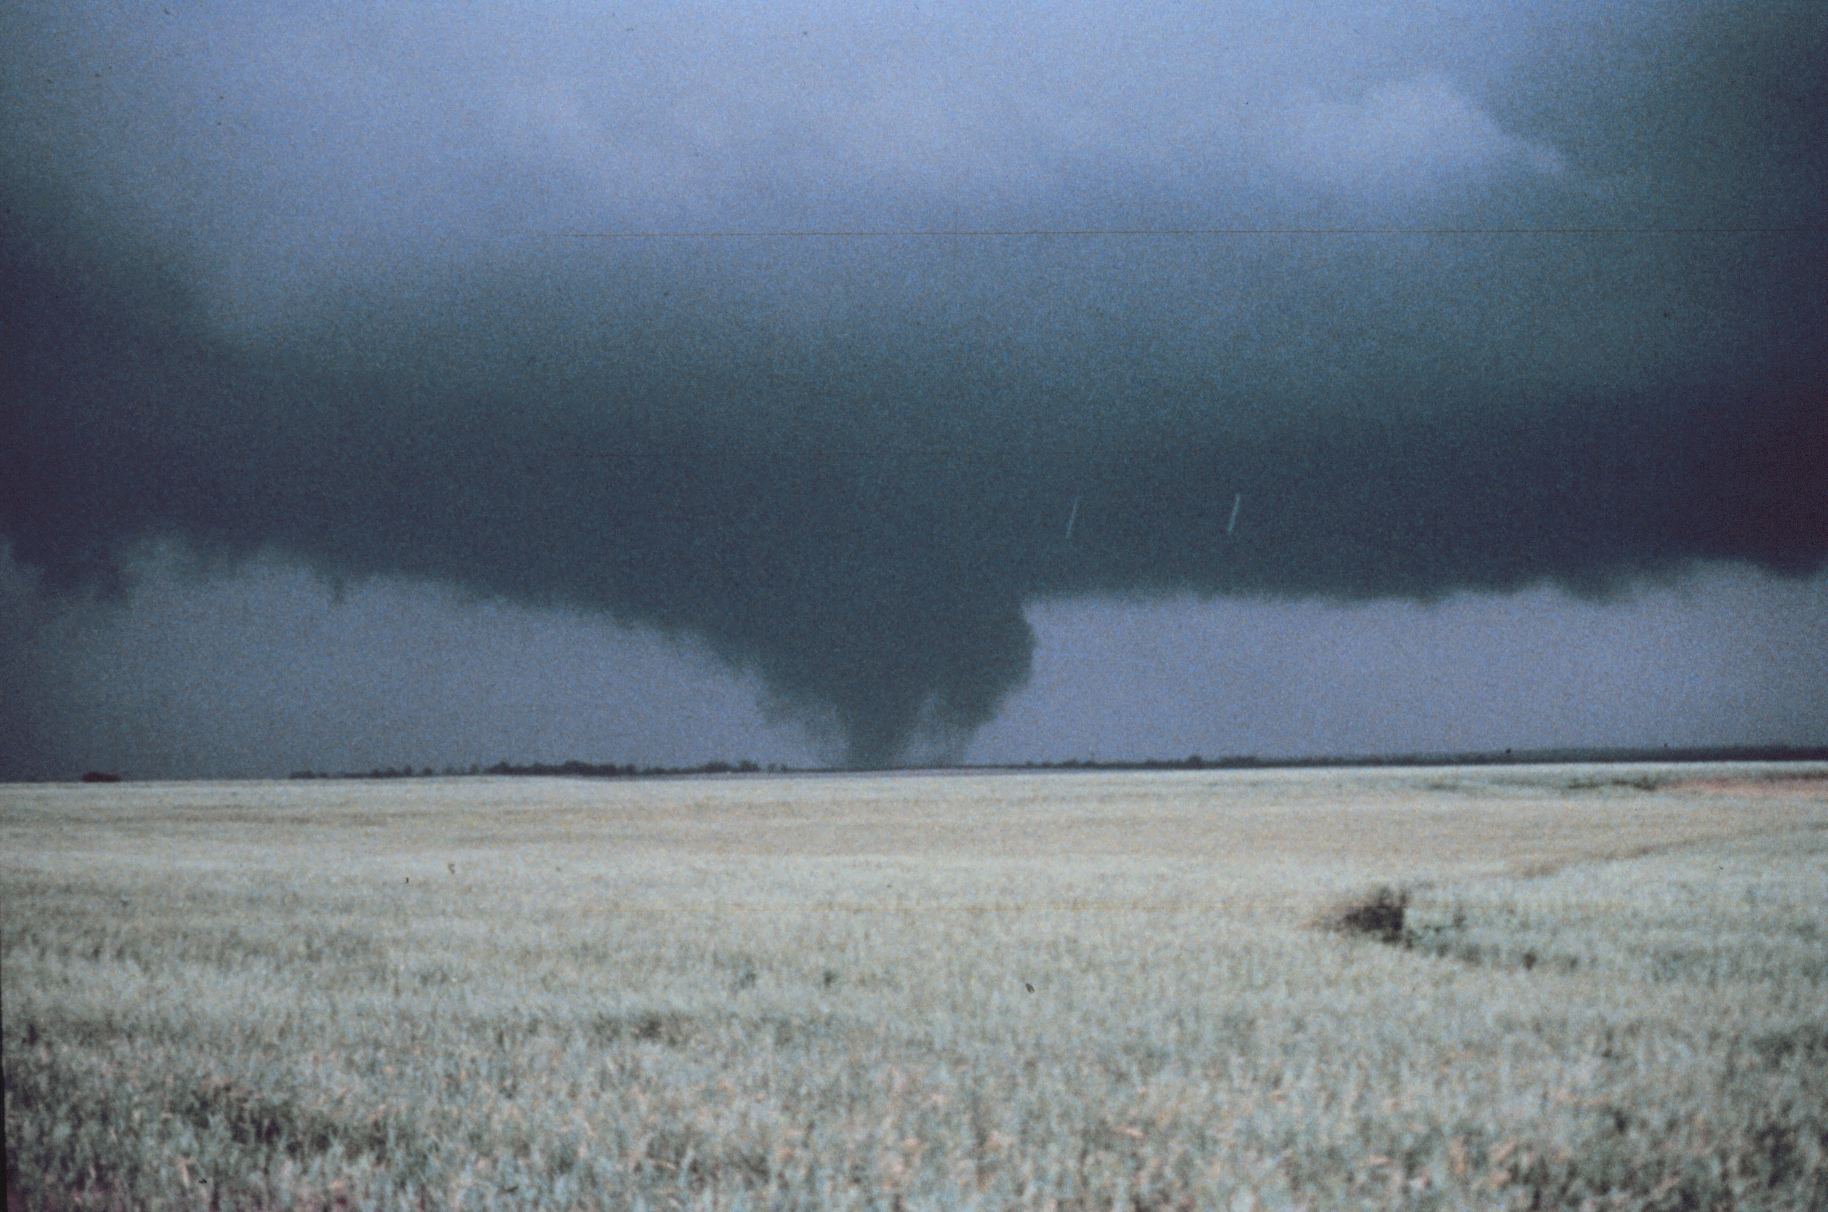 http://upload.wikimedia.org/wikipedia/commons/a/ab/Mayfield_Tornado2_-_NOAA.jpg